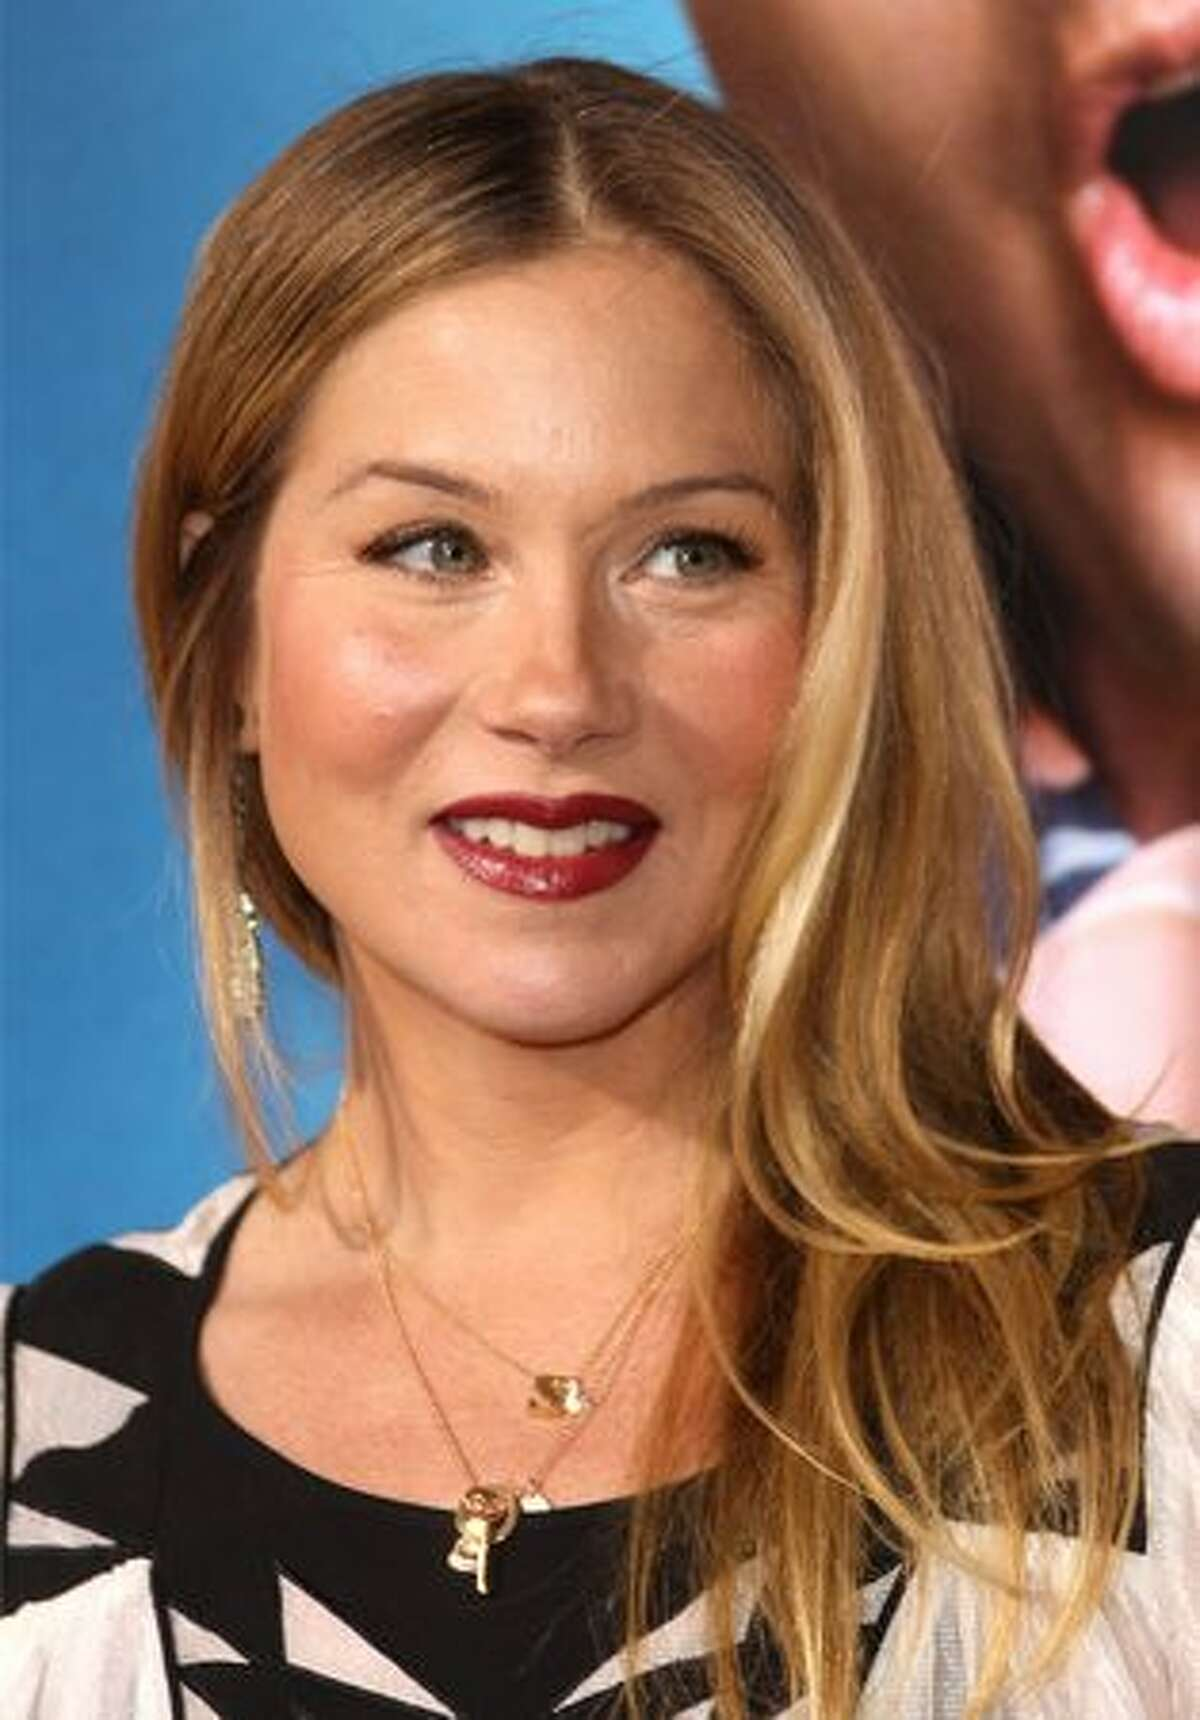 Actress Christina Applegate attends the premiere of Warner Brothers'